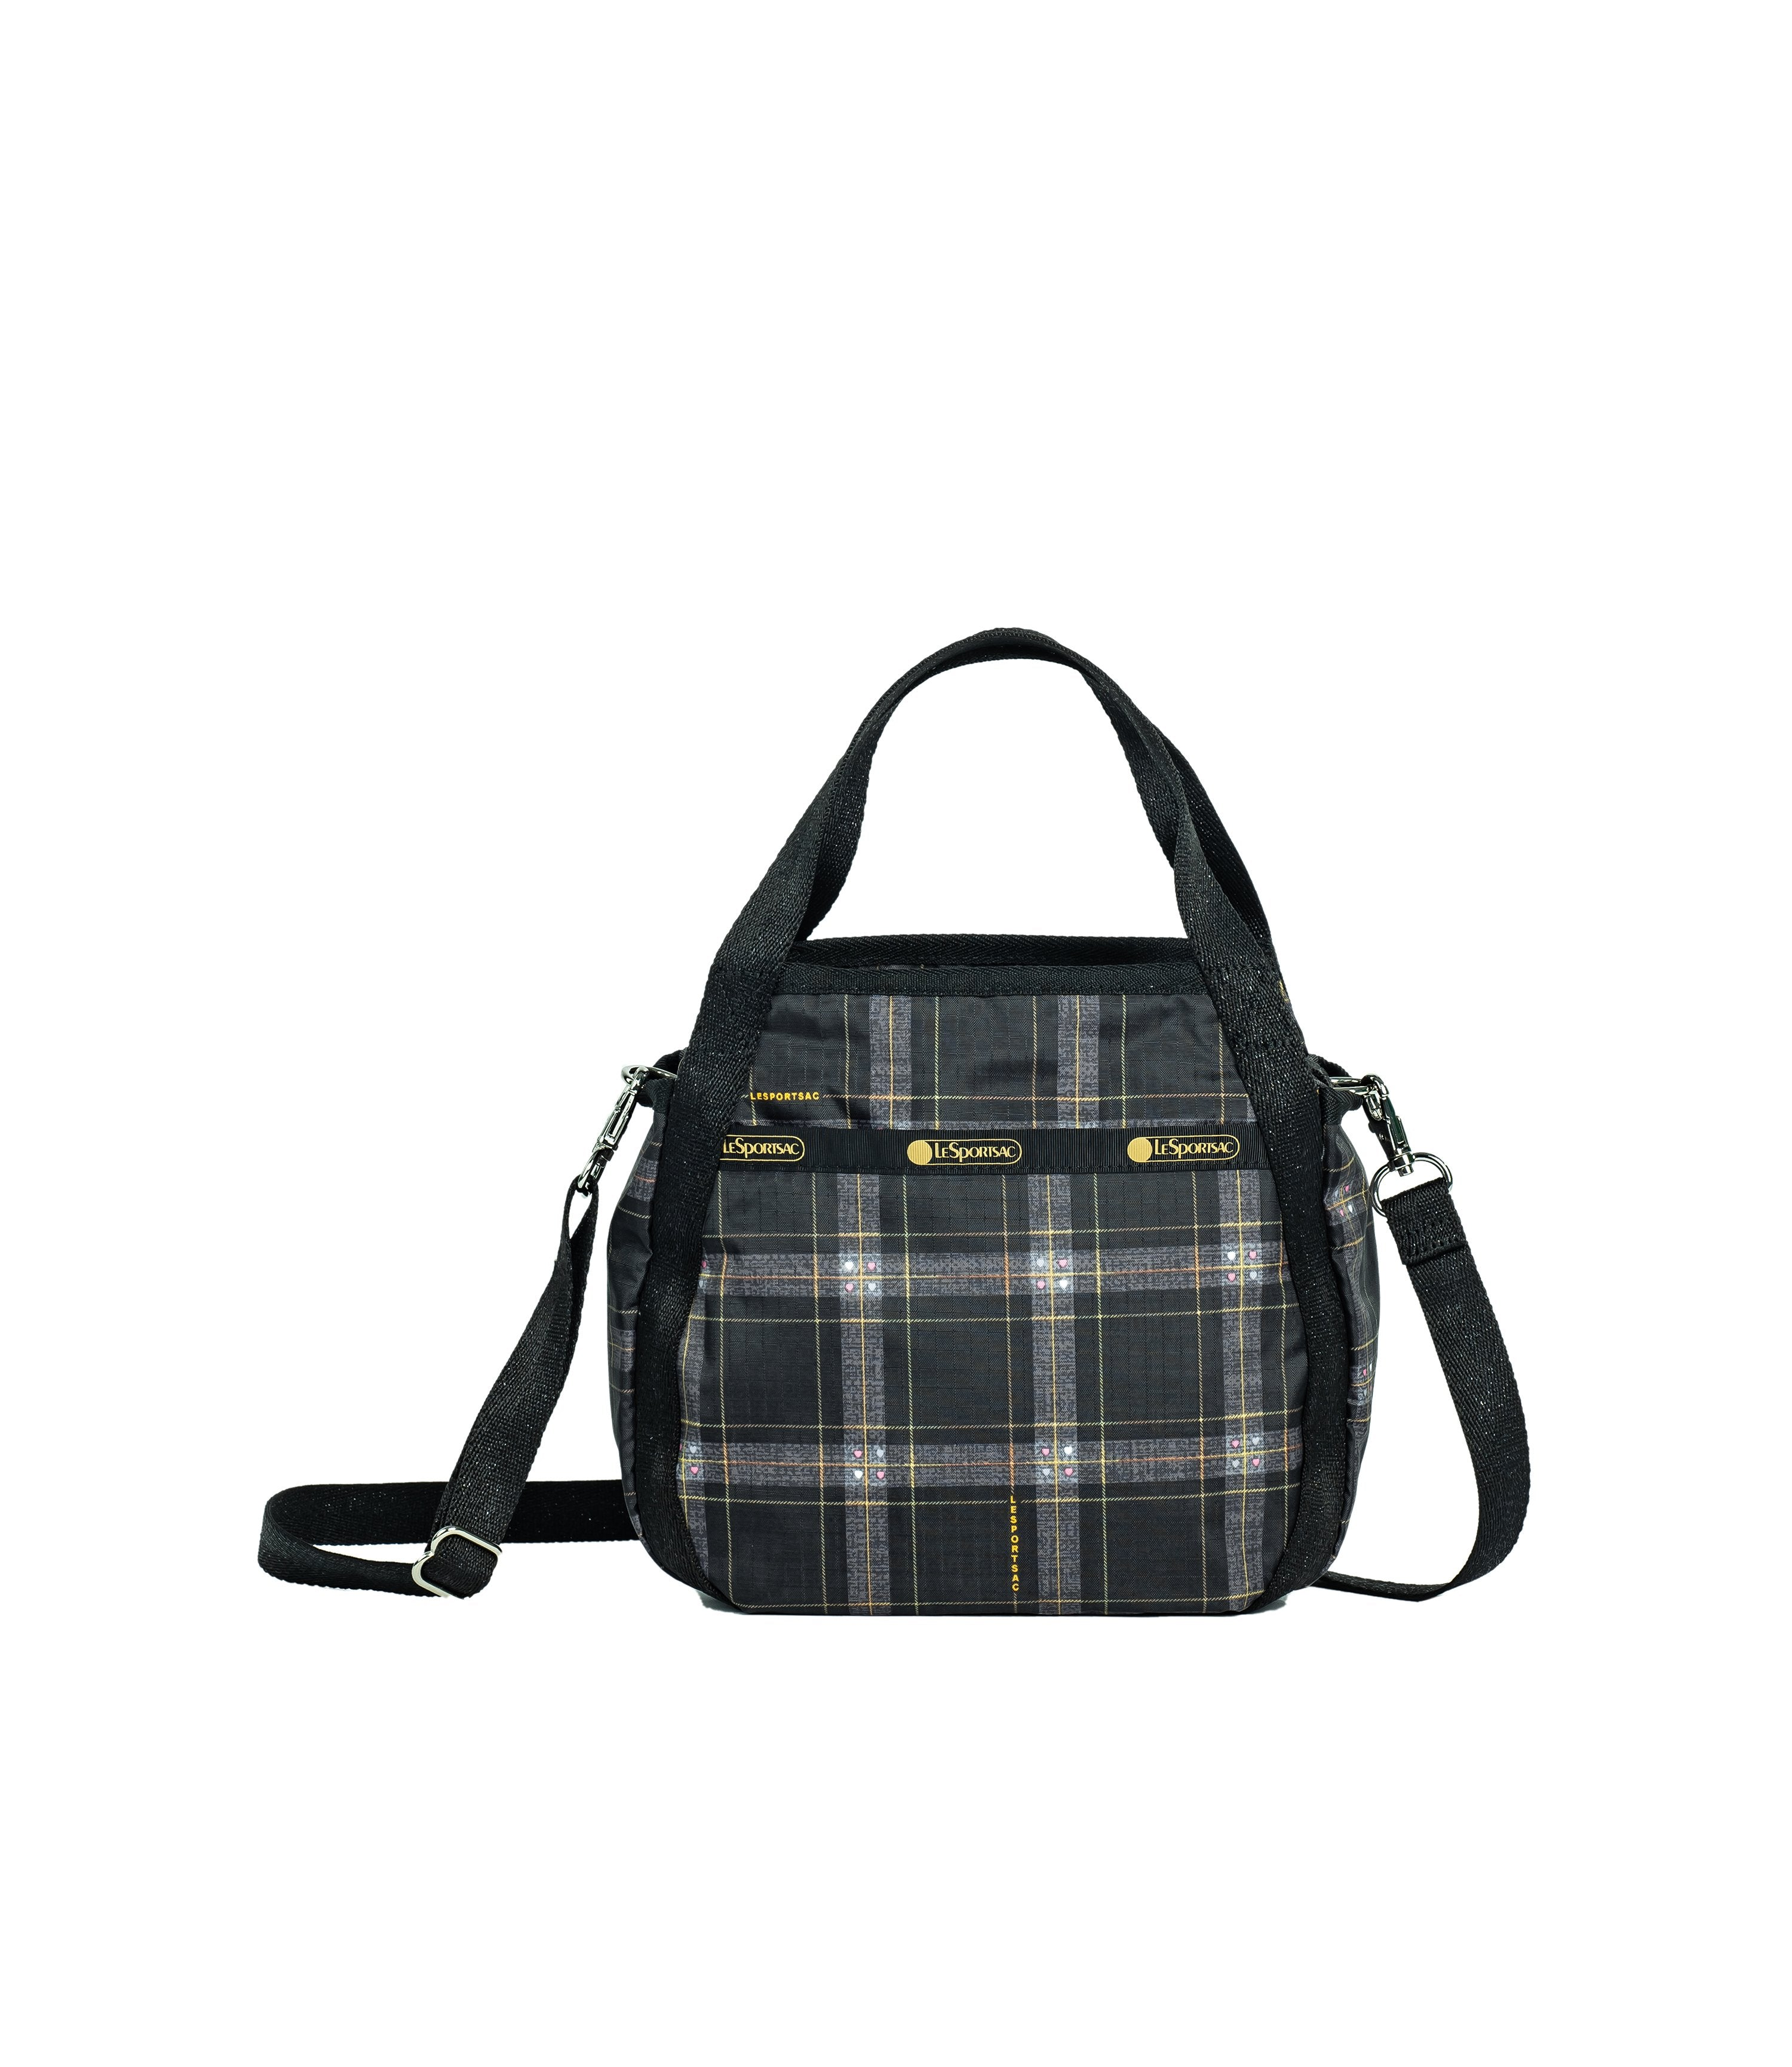 LeSportsac - Handbags - Small Jenni Crossbody - Sweet Plaid Noir print